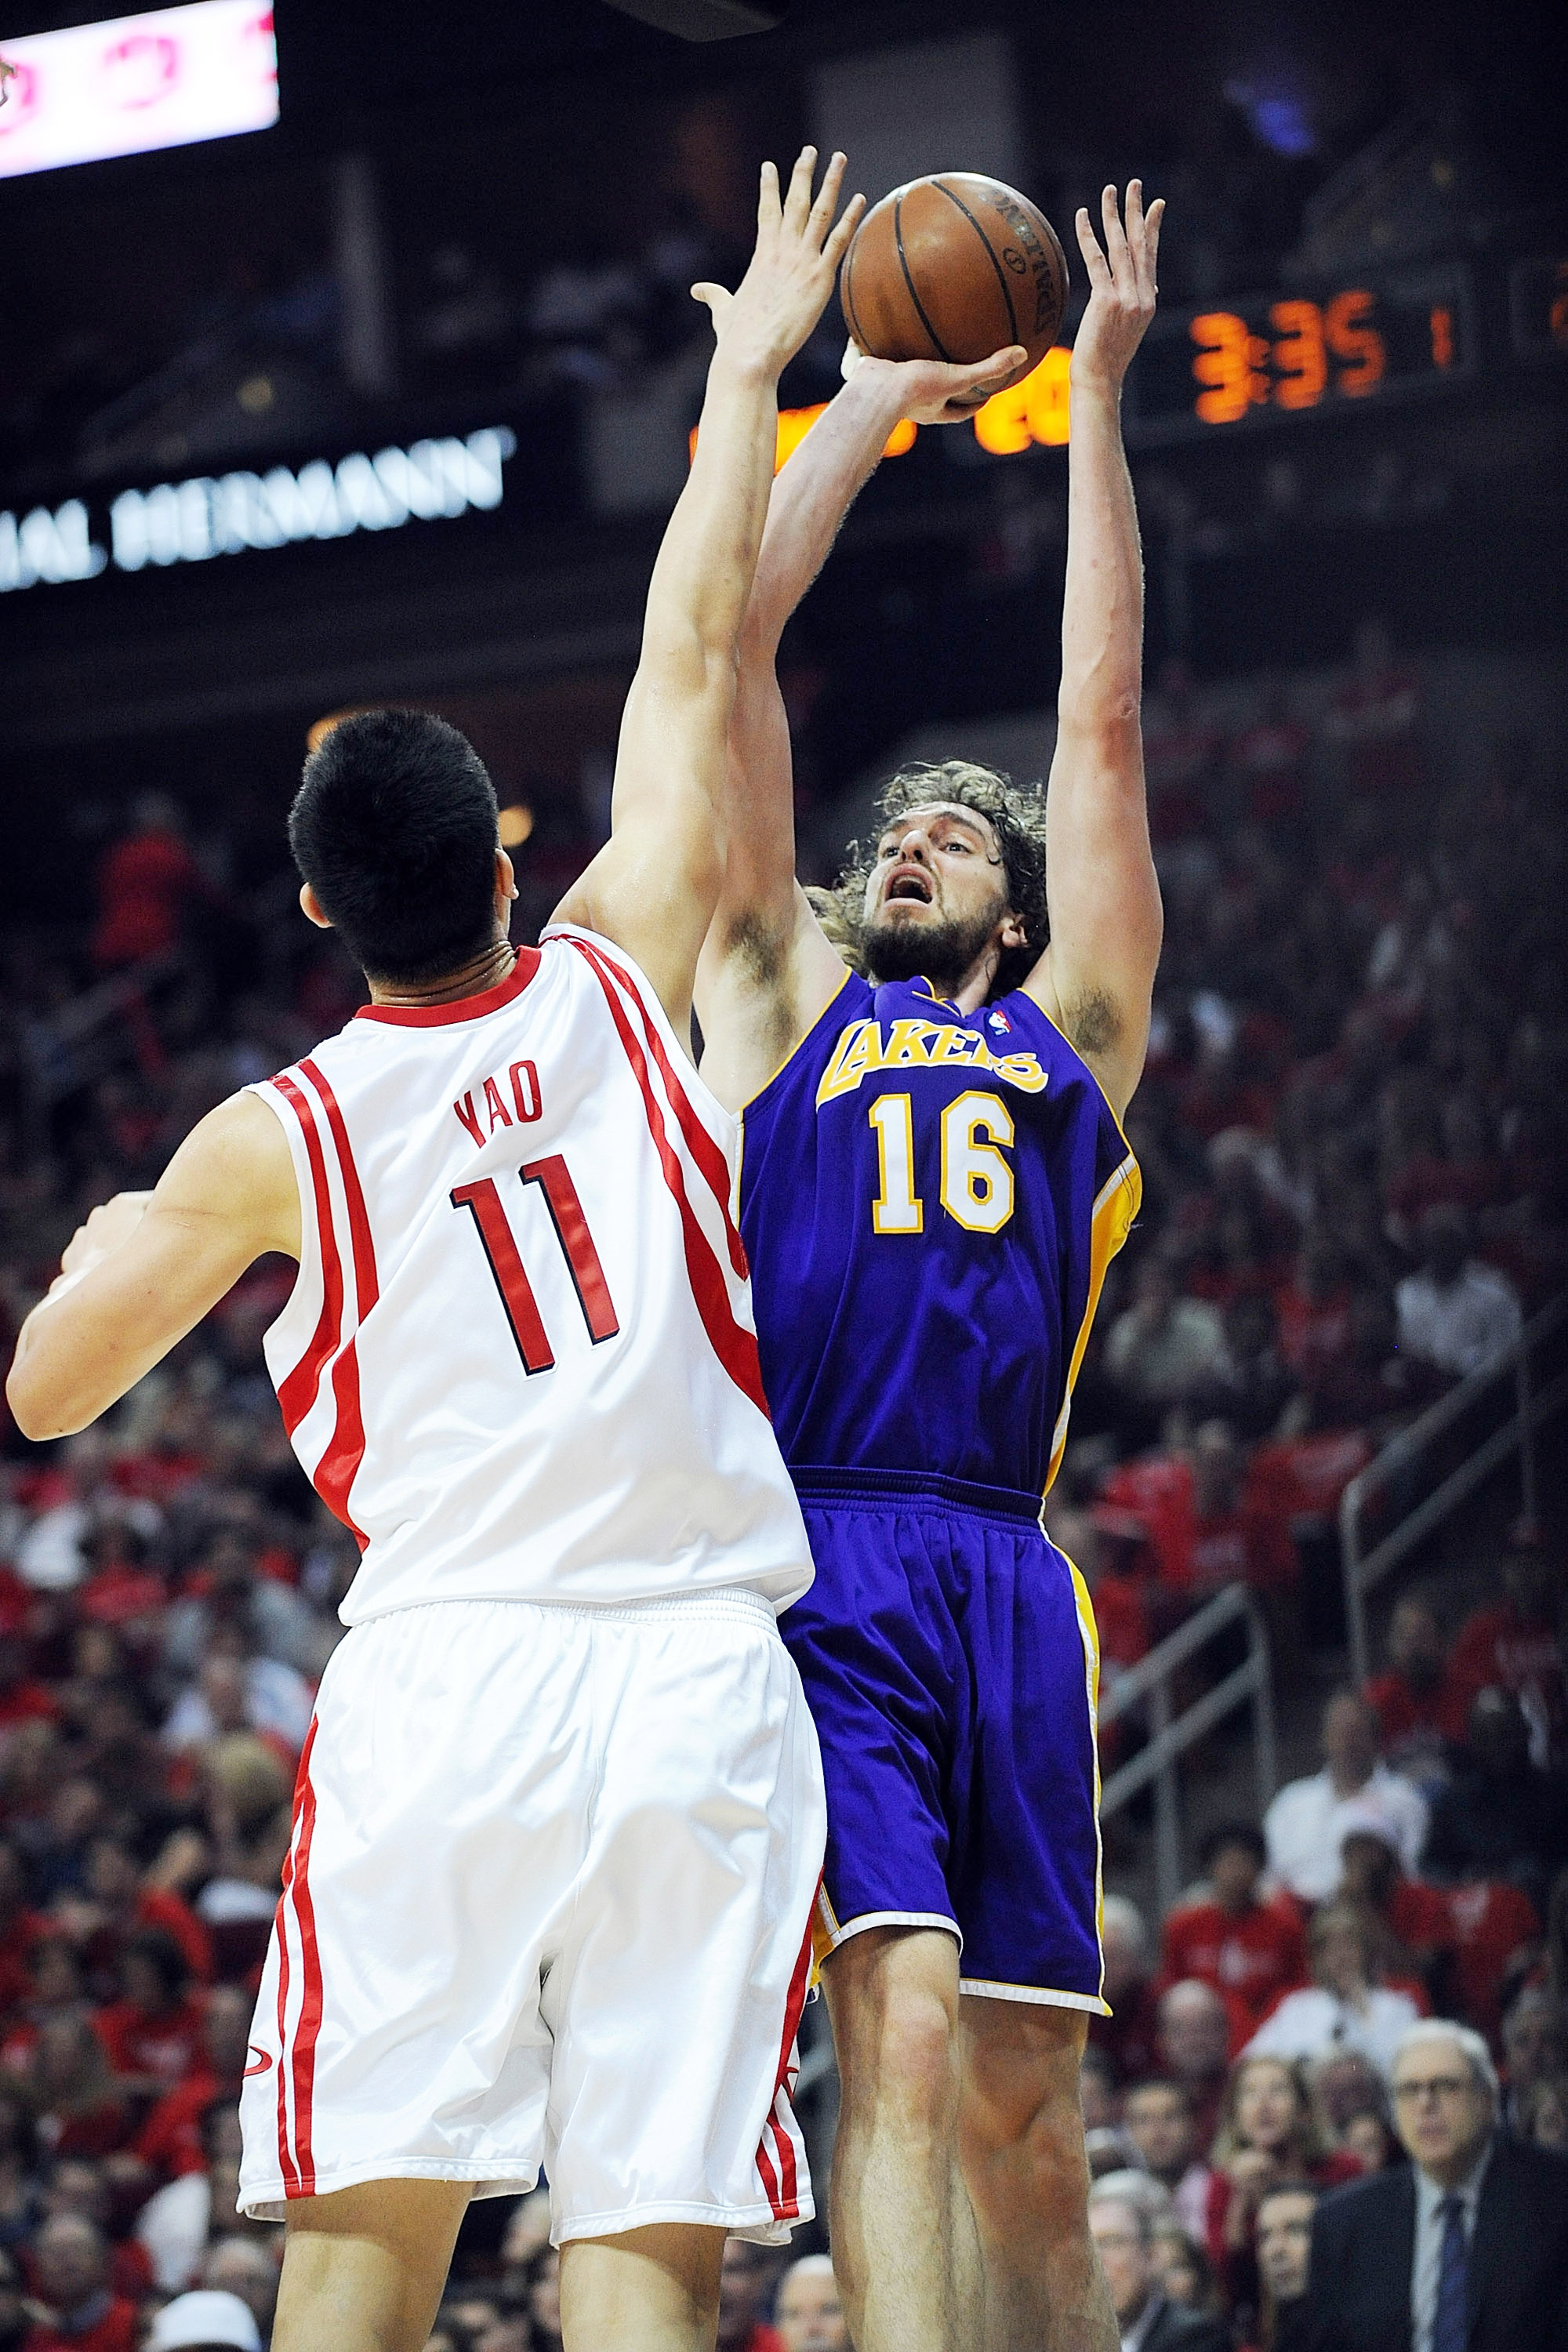 HOUSTON - MAY 08:  Forward Pau Gasol #16 of the Los Angeles Lakers takes a shot against Yao Ming #11 of the Houston Rockets in Game Three of the Western Conference Semifinals during the 2009 NBA Playoffs at Toyota Center on May 8, 2009 in Houston, Texas.